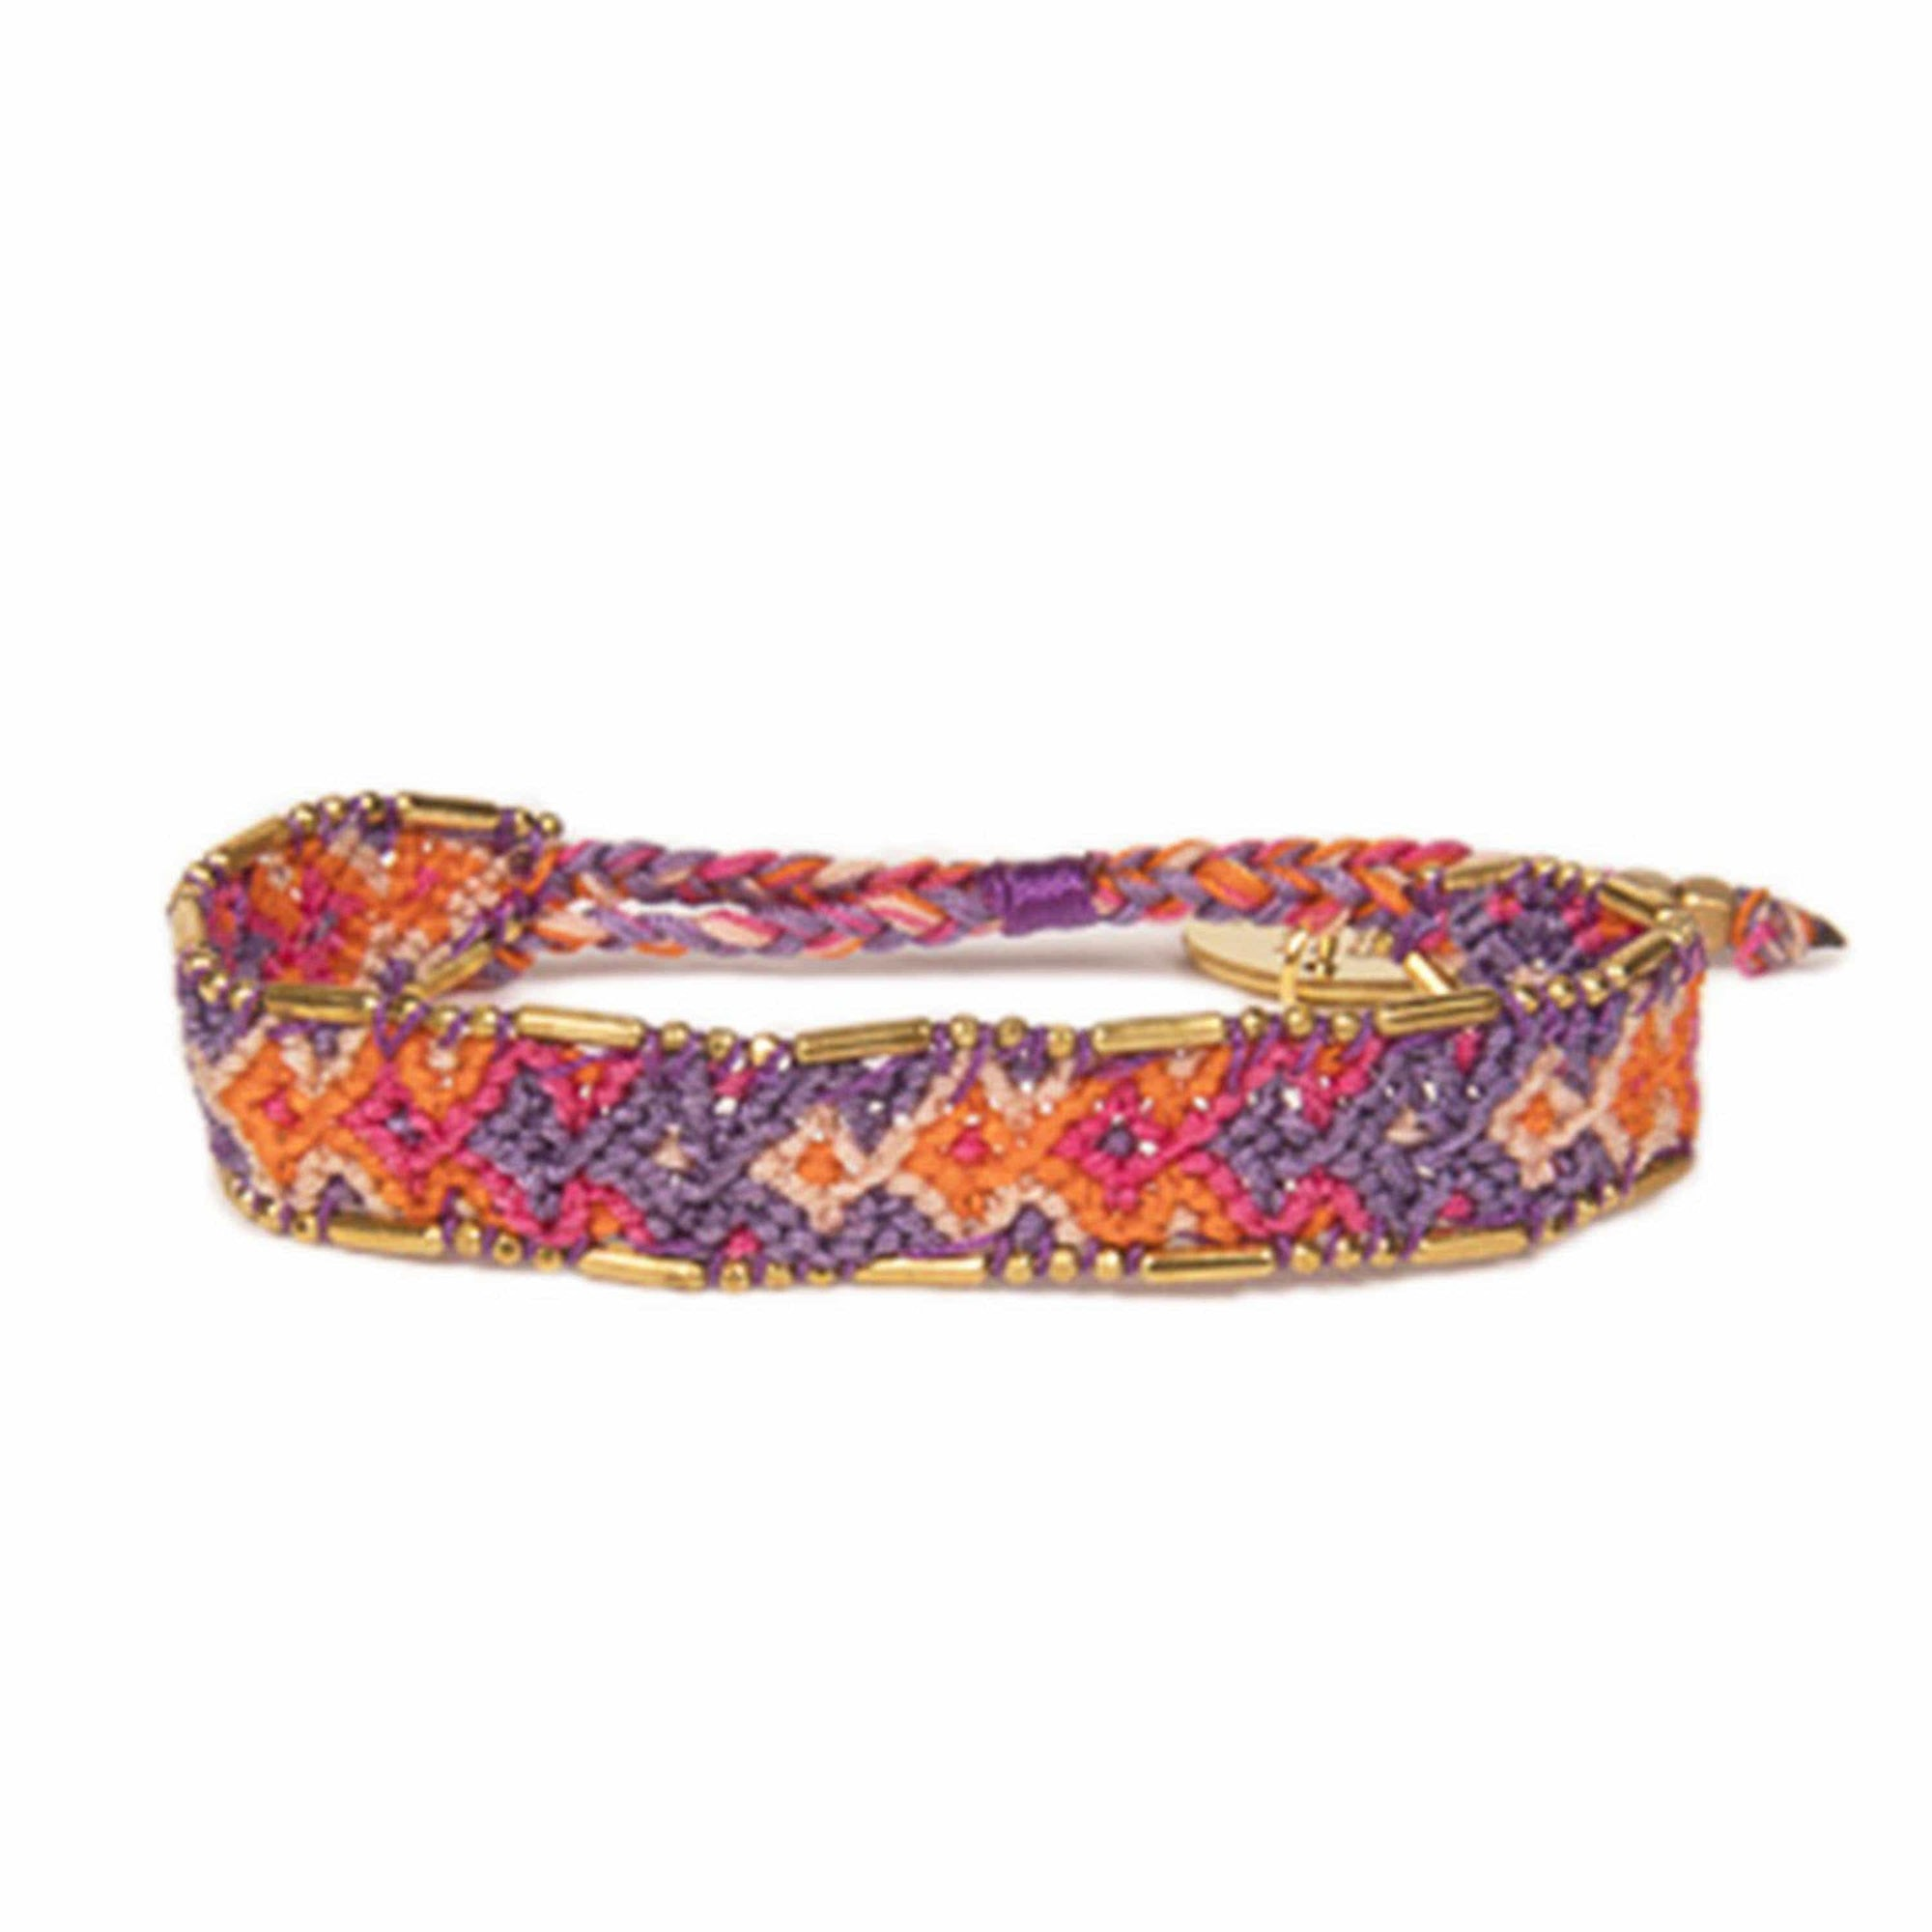 Bali Friendship Bracelet - Sunset Ubud Love Is Project woven bracelets by artisans in Indonesia. Beaded bracelets creates jobs.